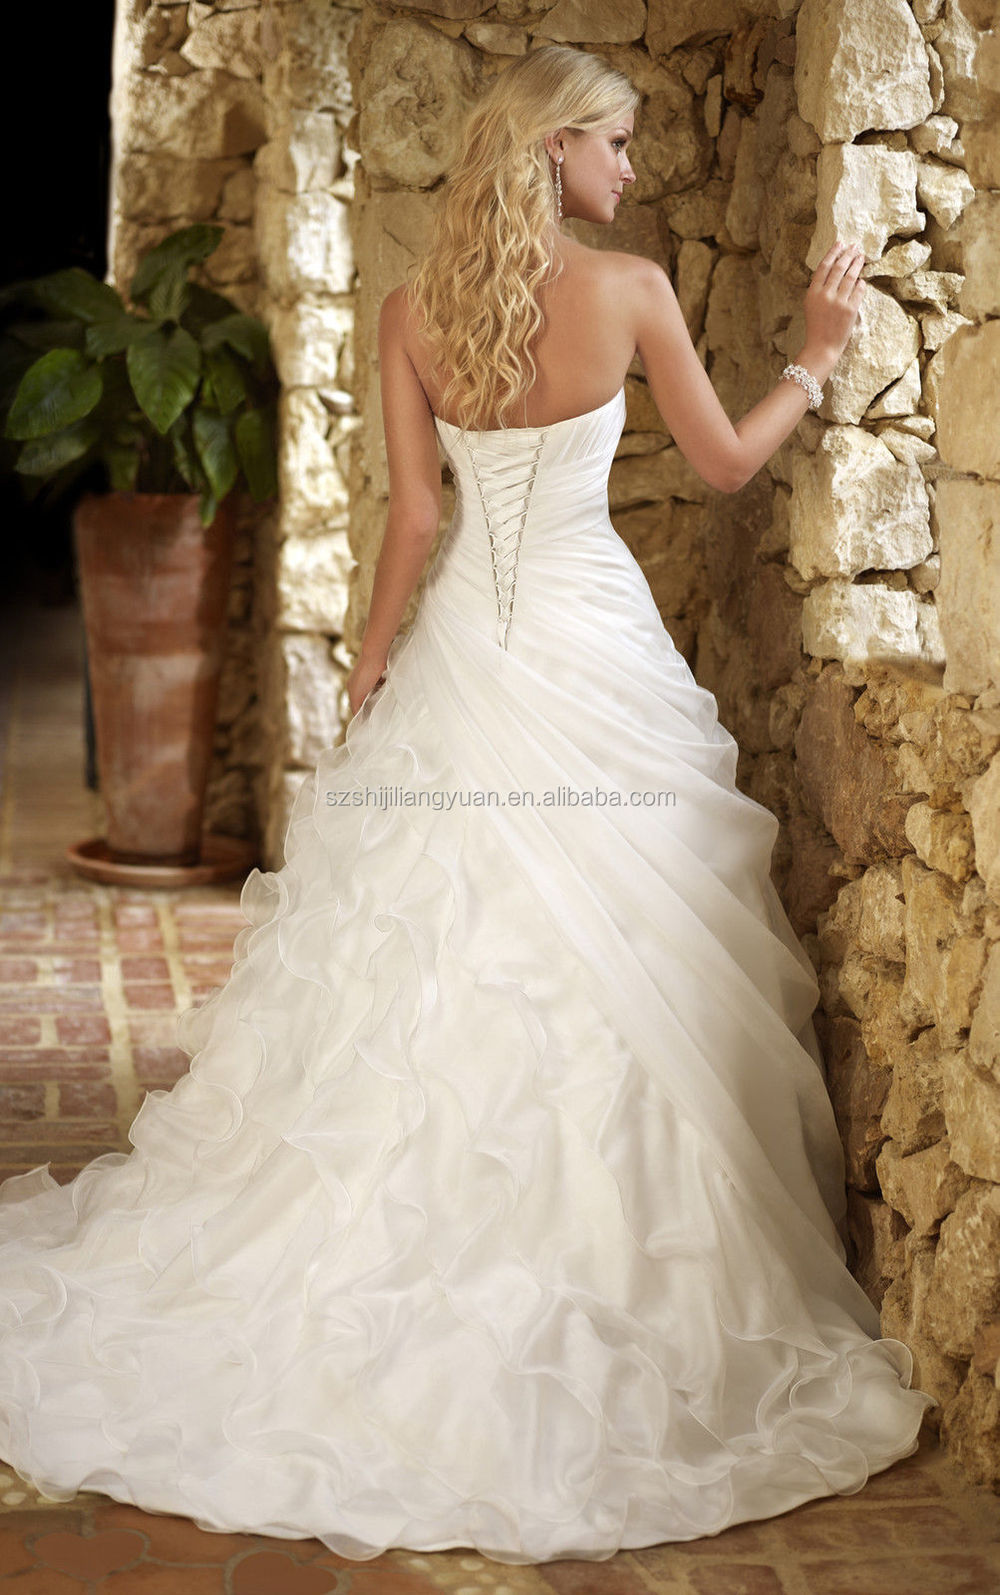 Ball Gown Wedding Dress Material : Organza ball gown long tail wedding dress with jacket alibaba